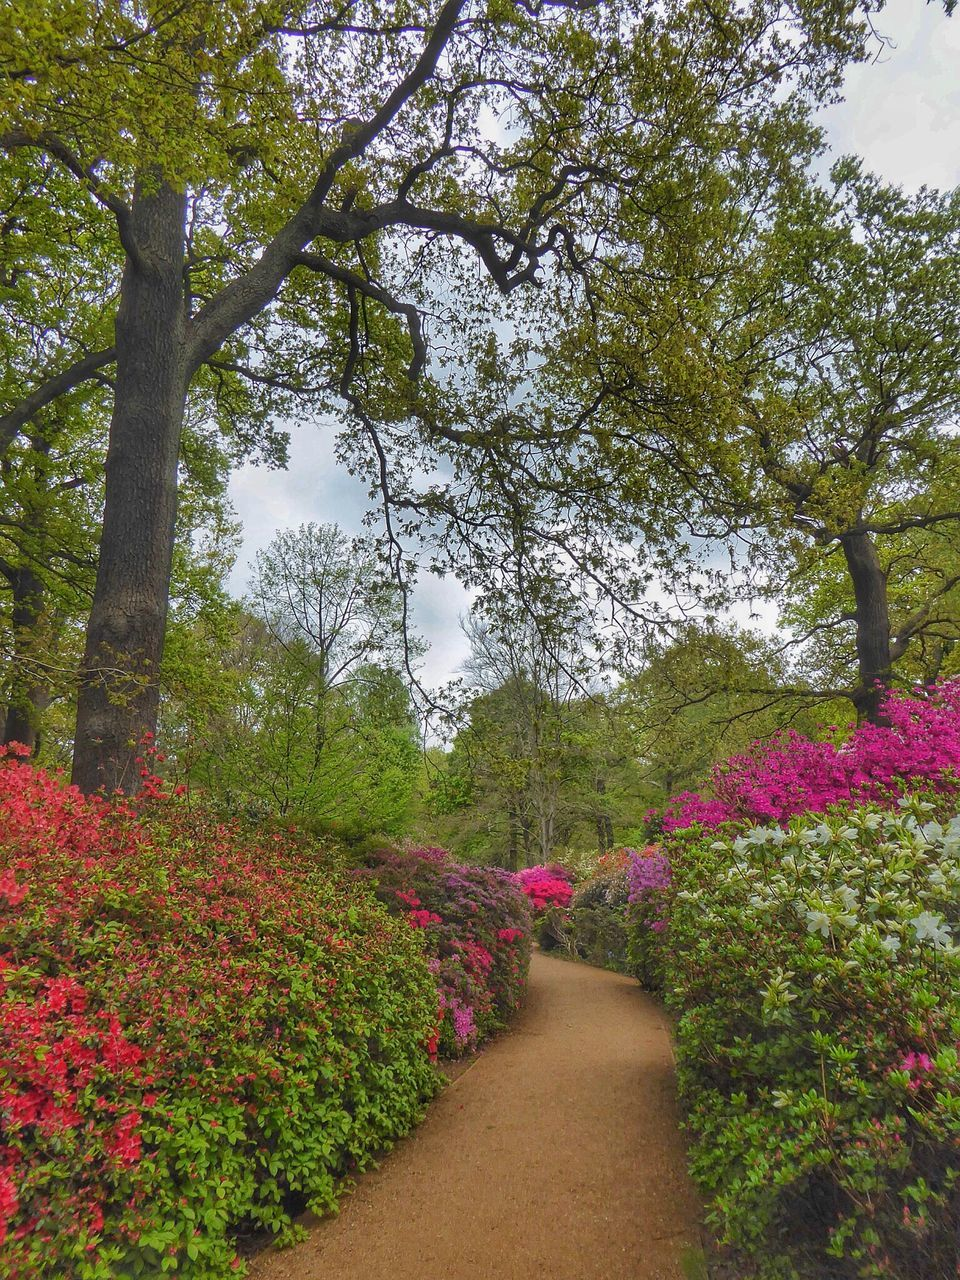 tree, growth, nature, beauty in nature, flower, the way forward, plant, tranquility, tranquil scene, scenics, green color, day, no people, outdoors, branch, walkway, sky, freshness